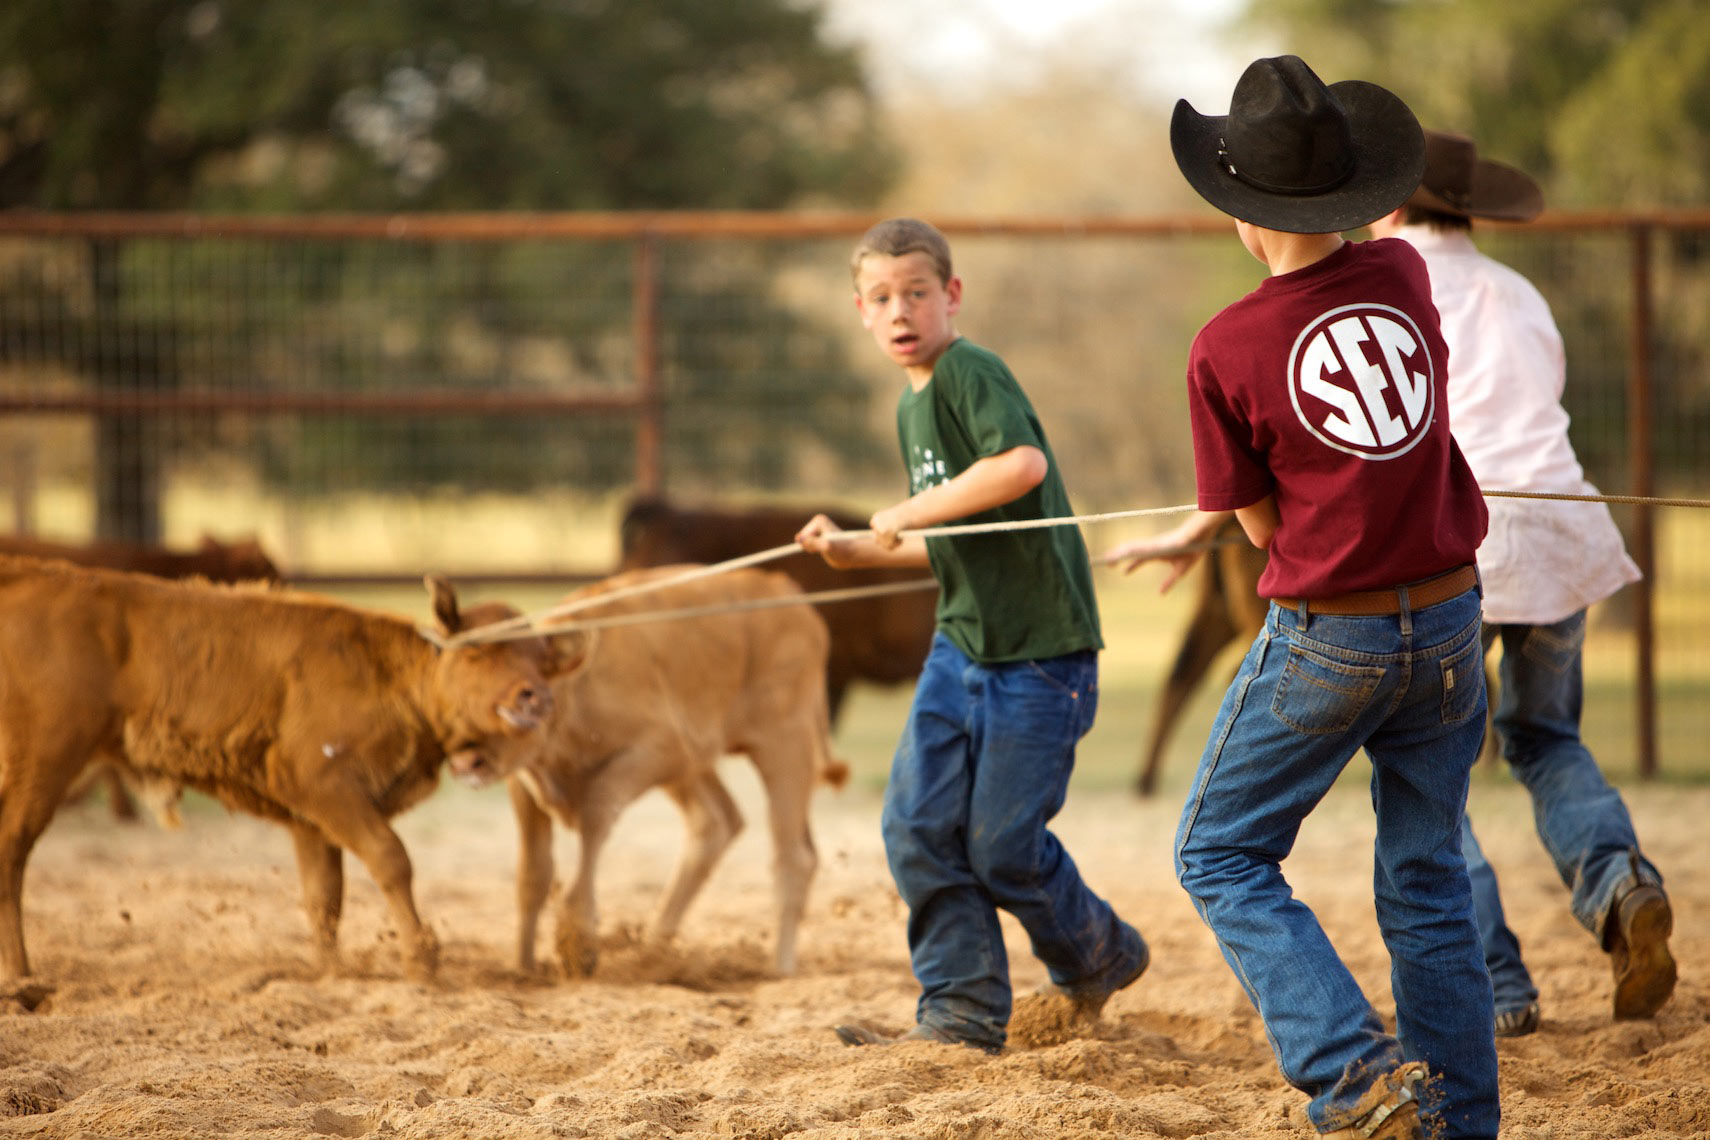 peeler-farms-ranch-texas-jason-risner-photography-6580